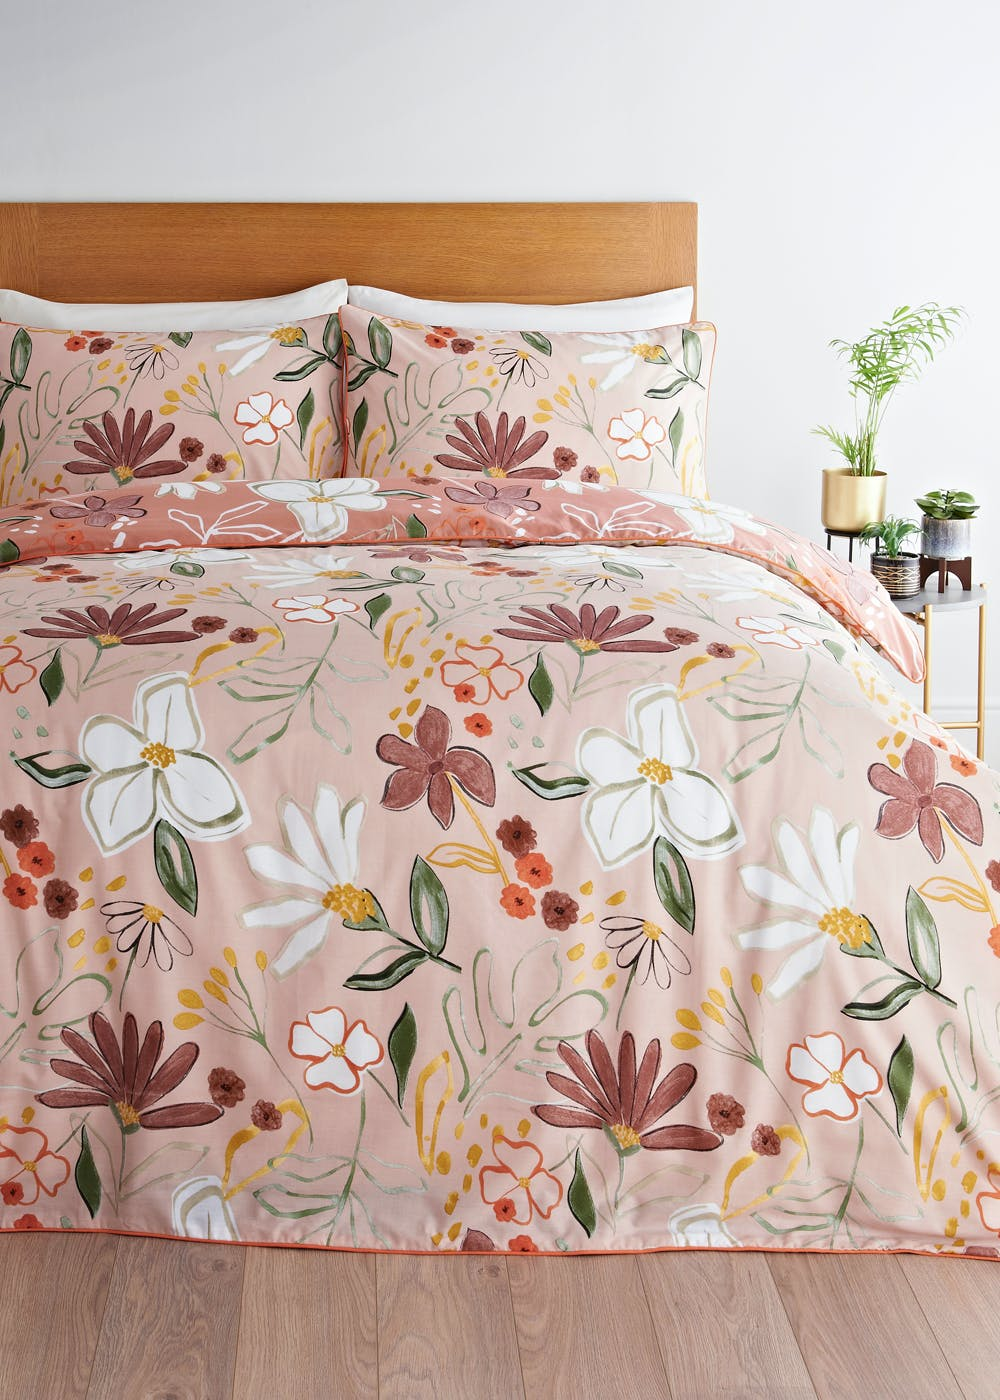 Reversible Painted Floral Duvet Cover